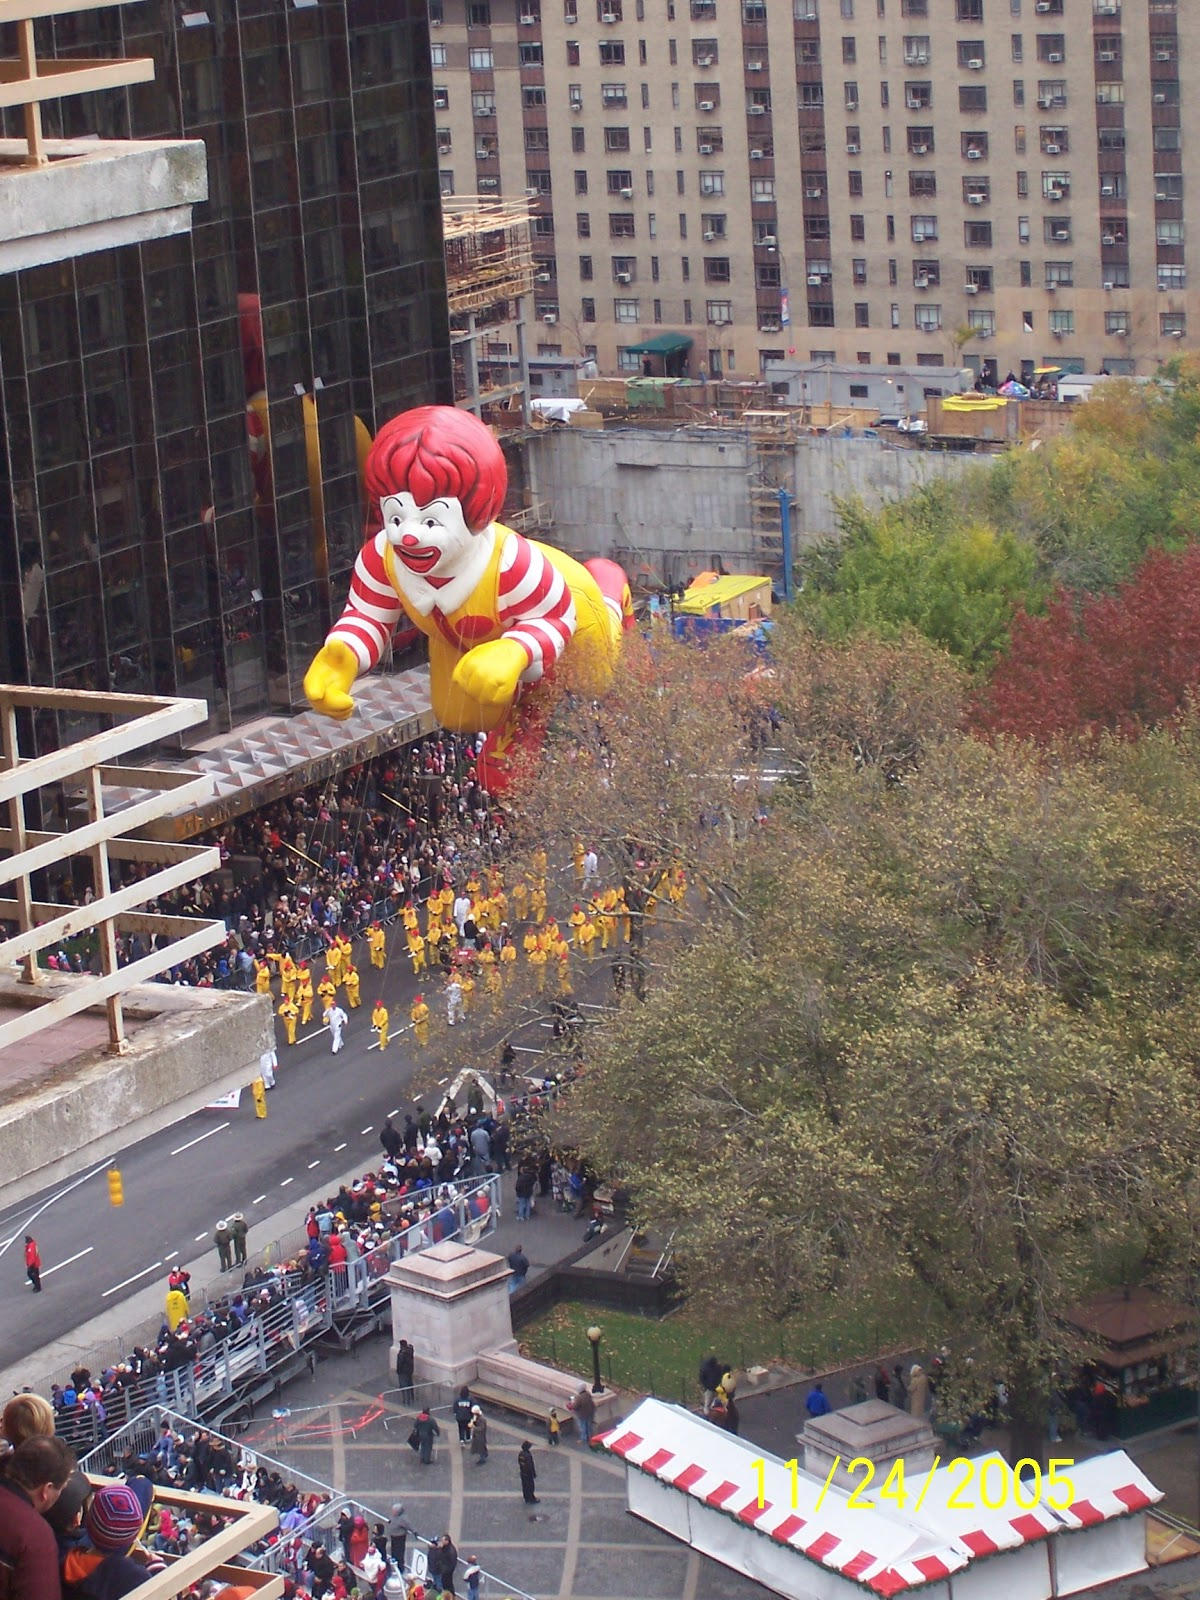 Macy S 10th Birthday Party At Dylan S Candy Bar: Attempted Bloggery: The 2005 Macy's Thanksgiving Day Parade